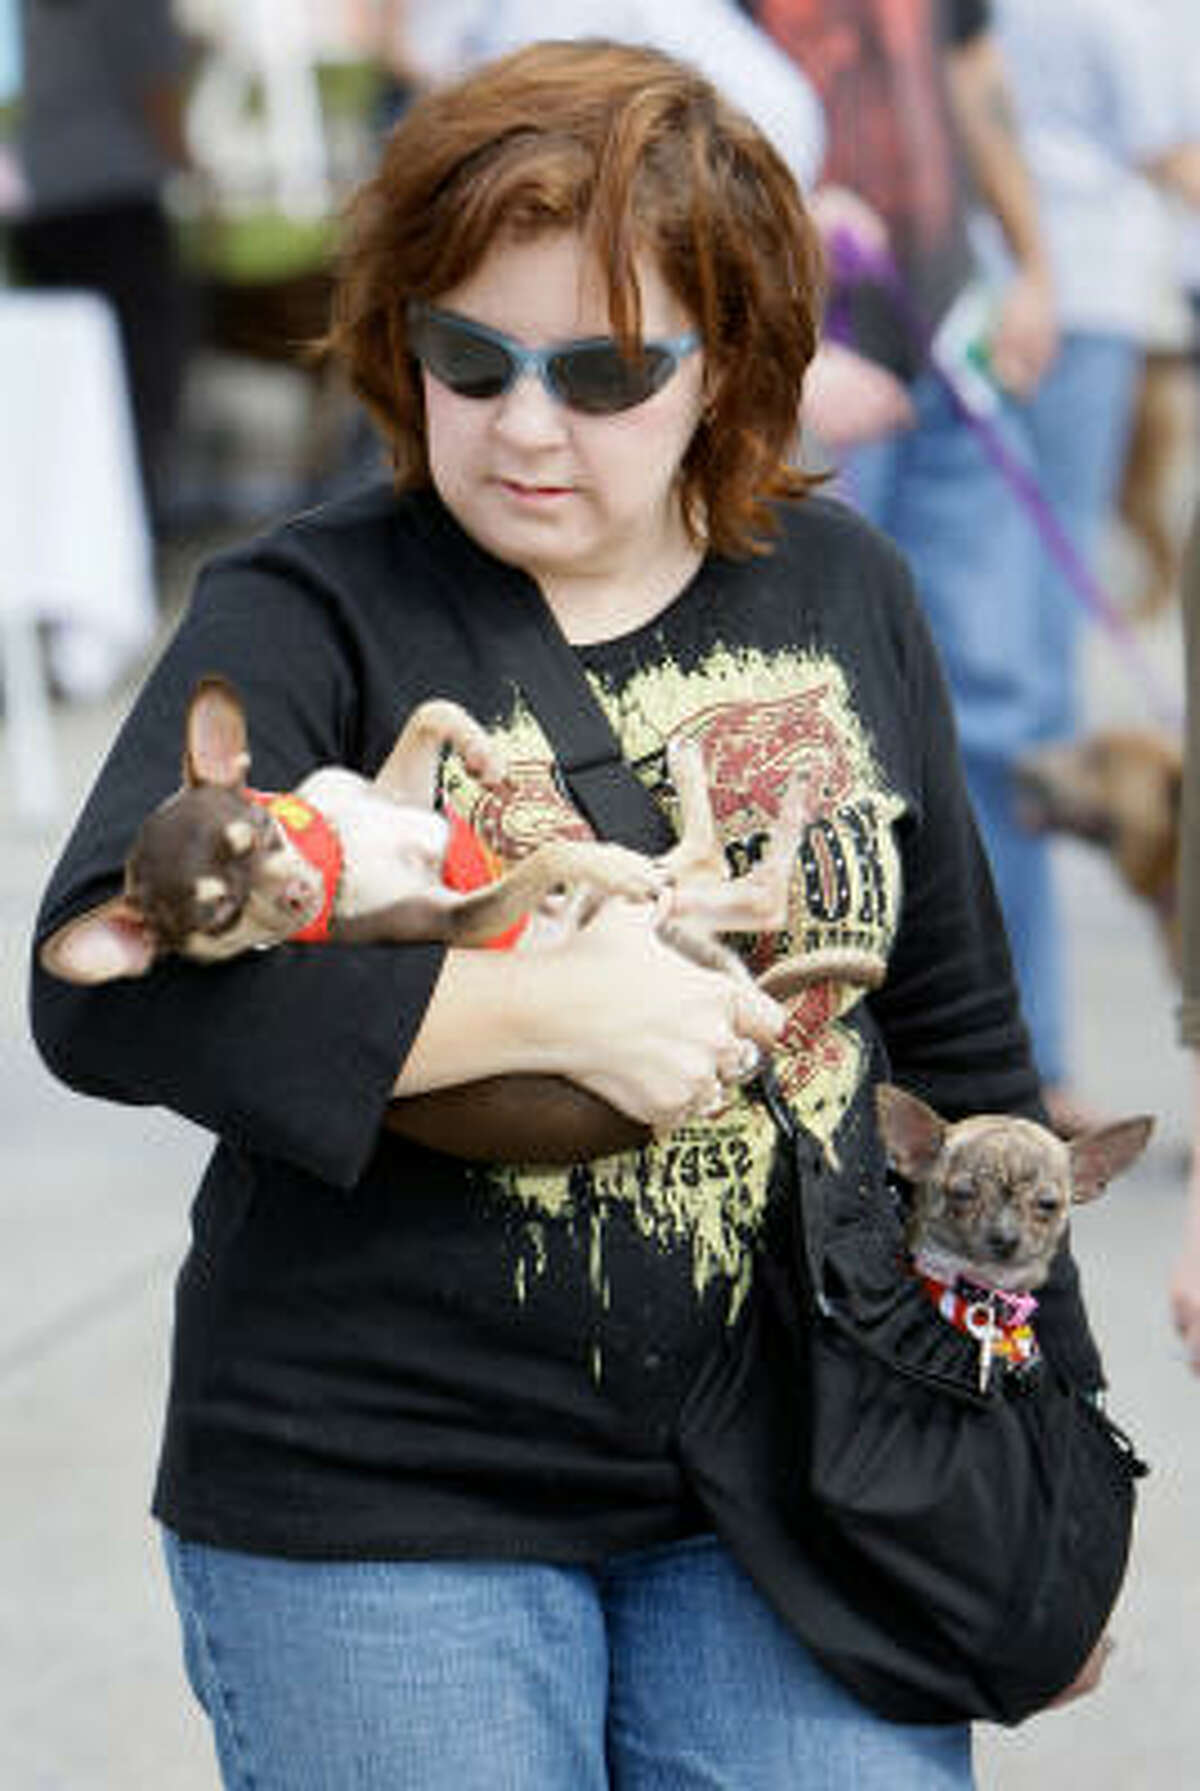 Darla Reasner of Montgomery carries her chihuahuas Jack, left, and Phoebe , right, during the 3rd Annual Kingwood Barktoberfest at Kingwood Town Center Park in Kingwood. The event benefited local shelters and animal rescue groups. Both her dogs were rescues.